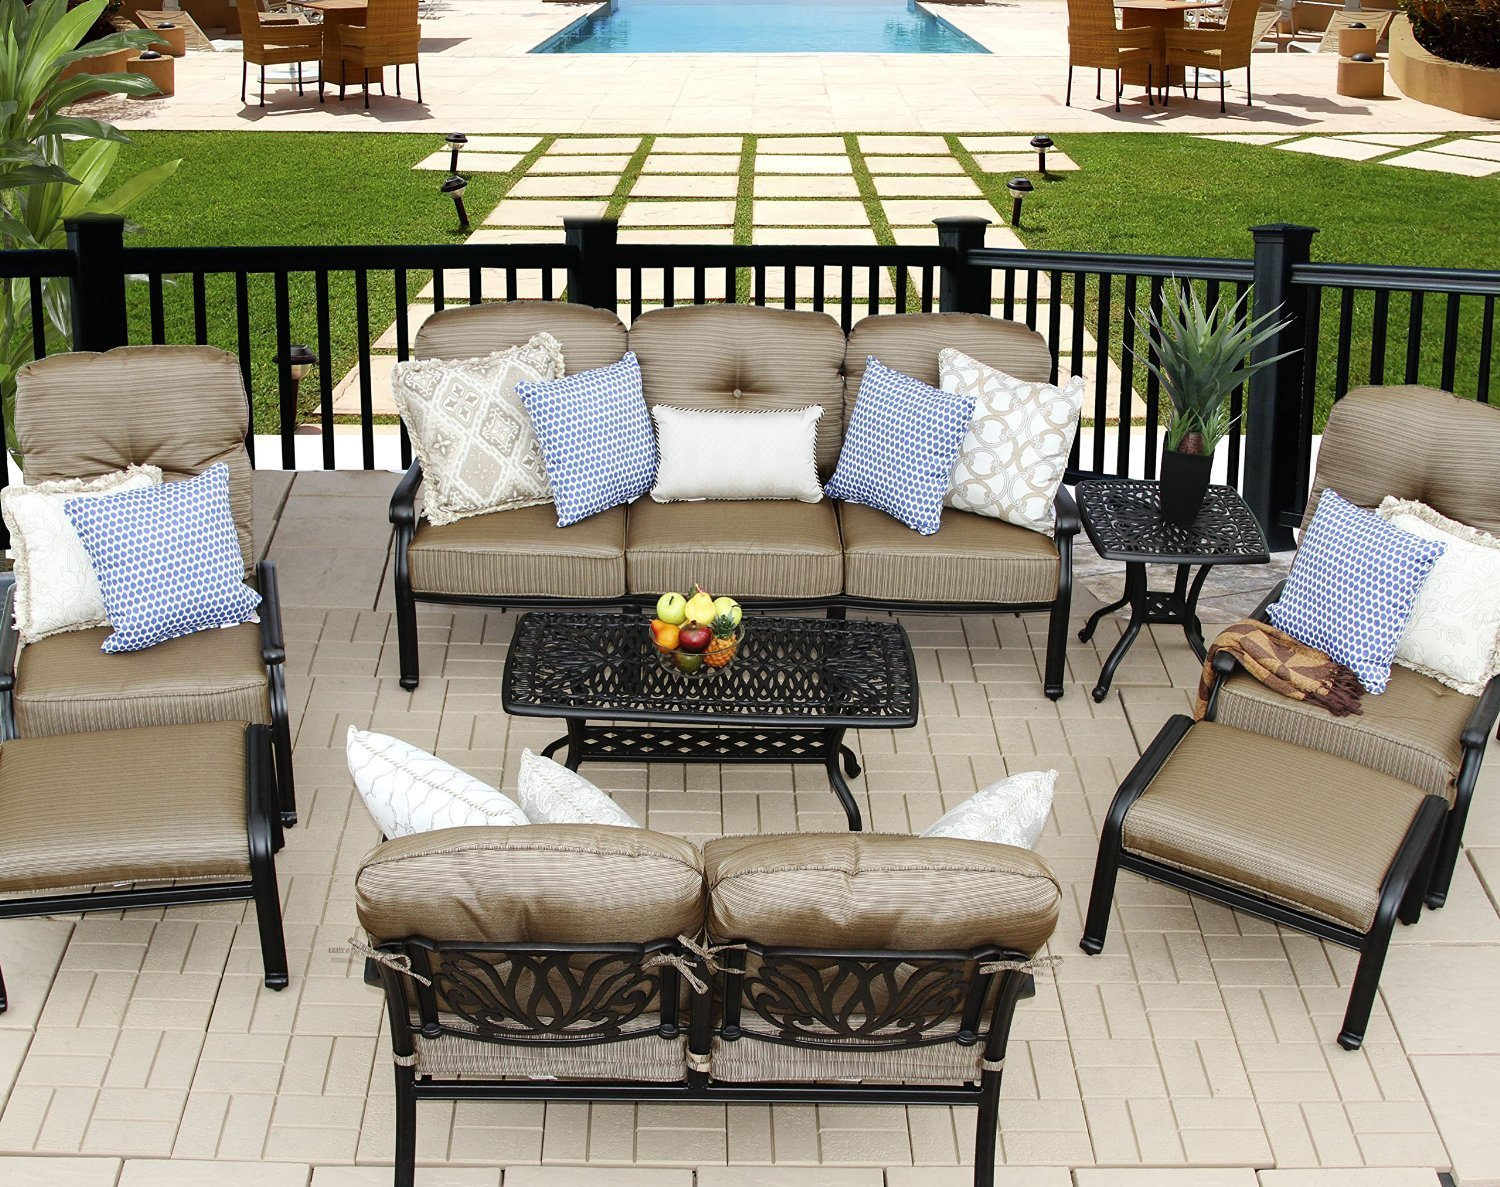 Patio Furniture In Corona Riverside Patio Land Outdoor Living